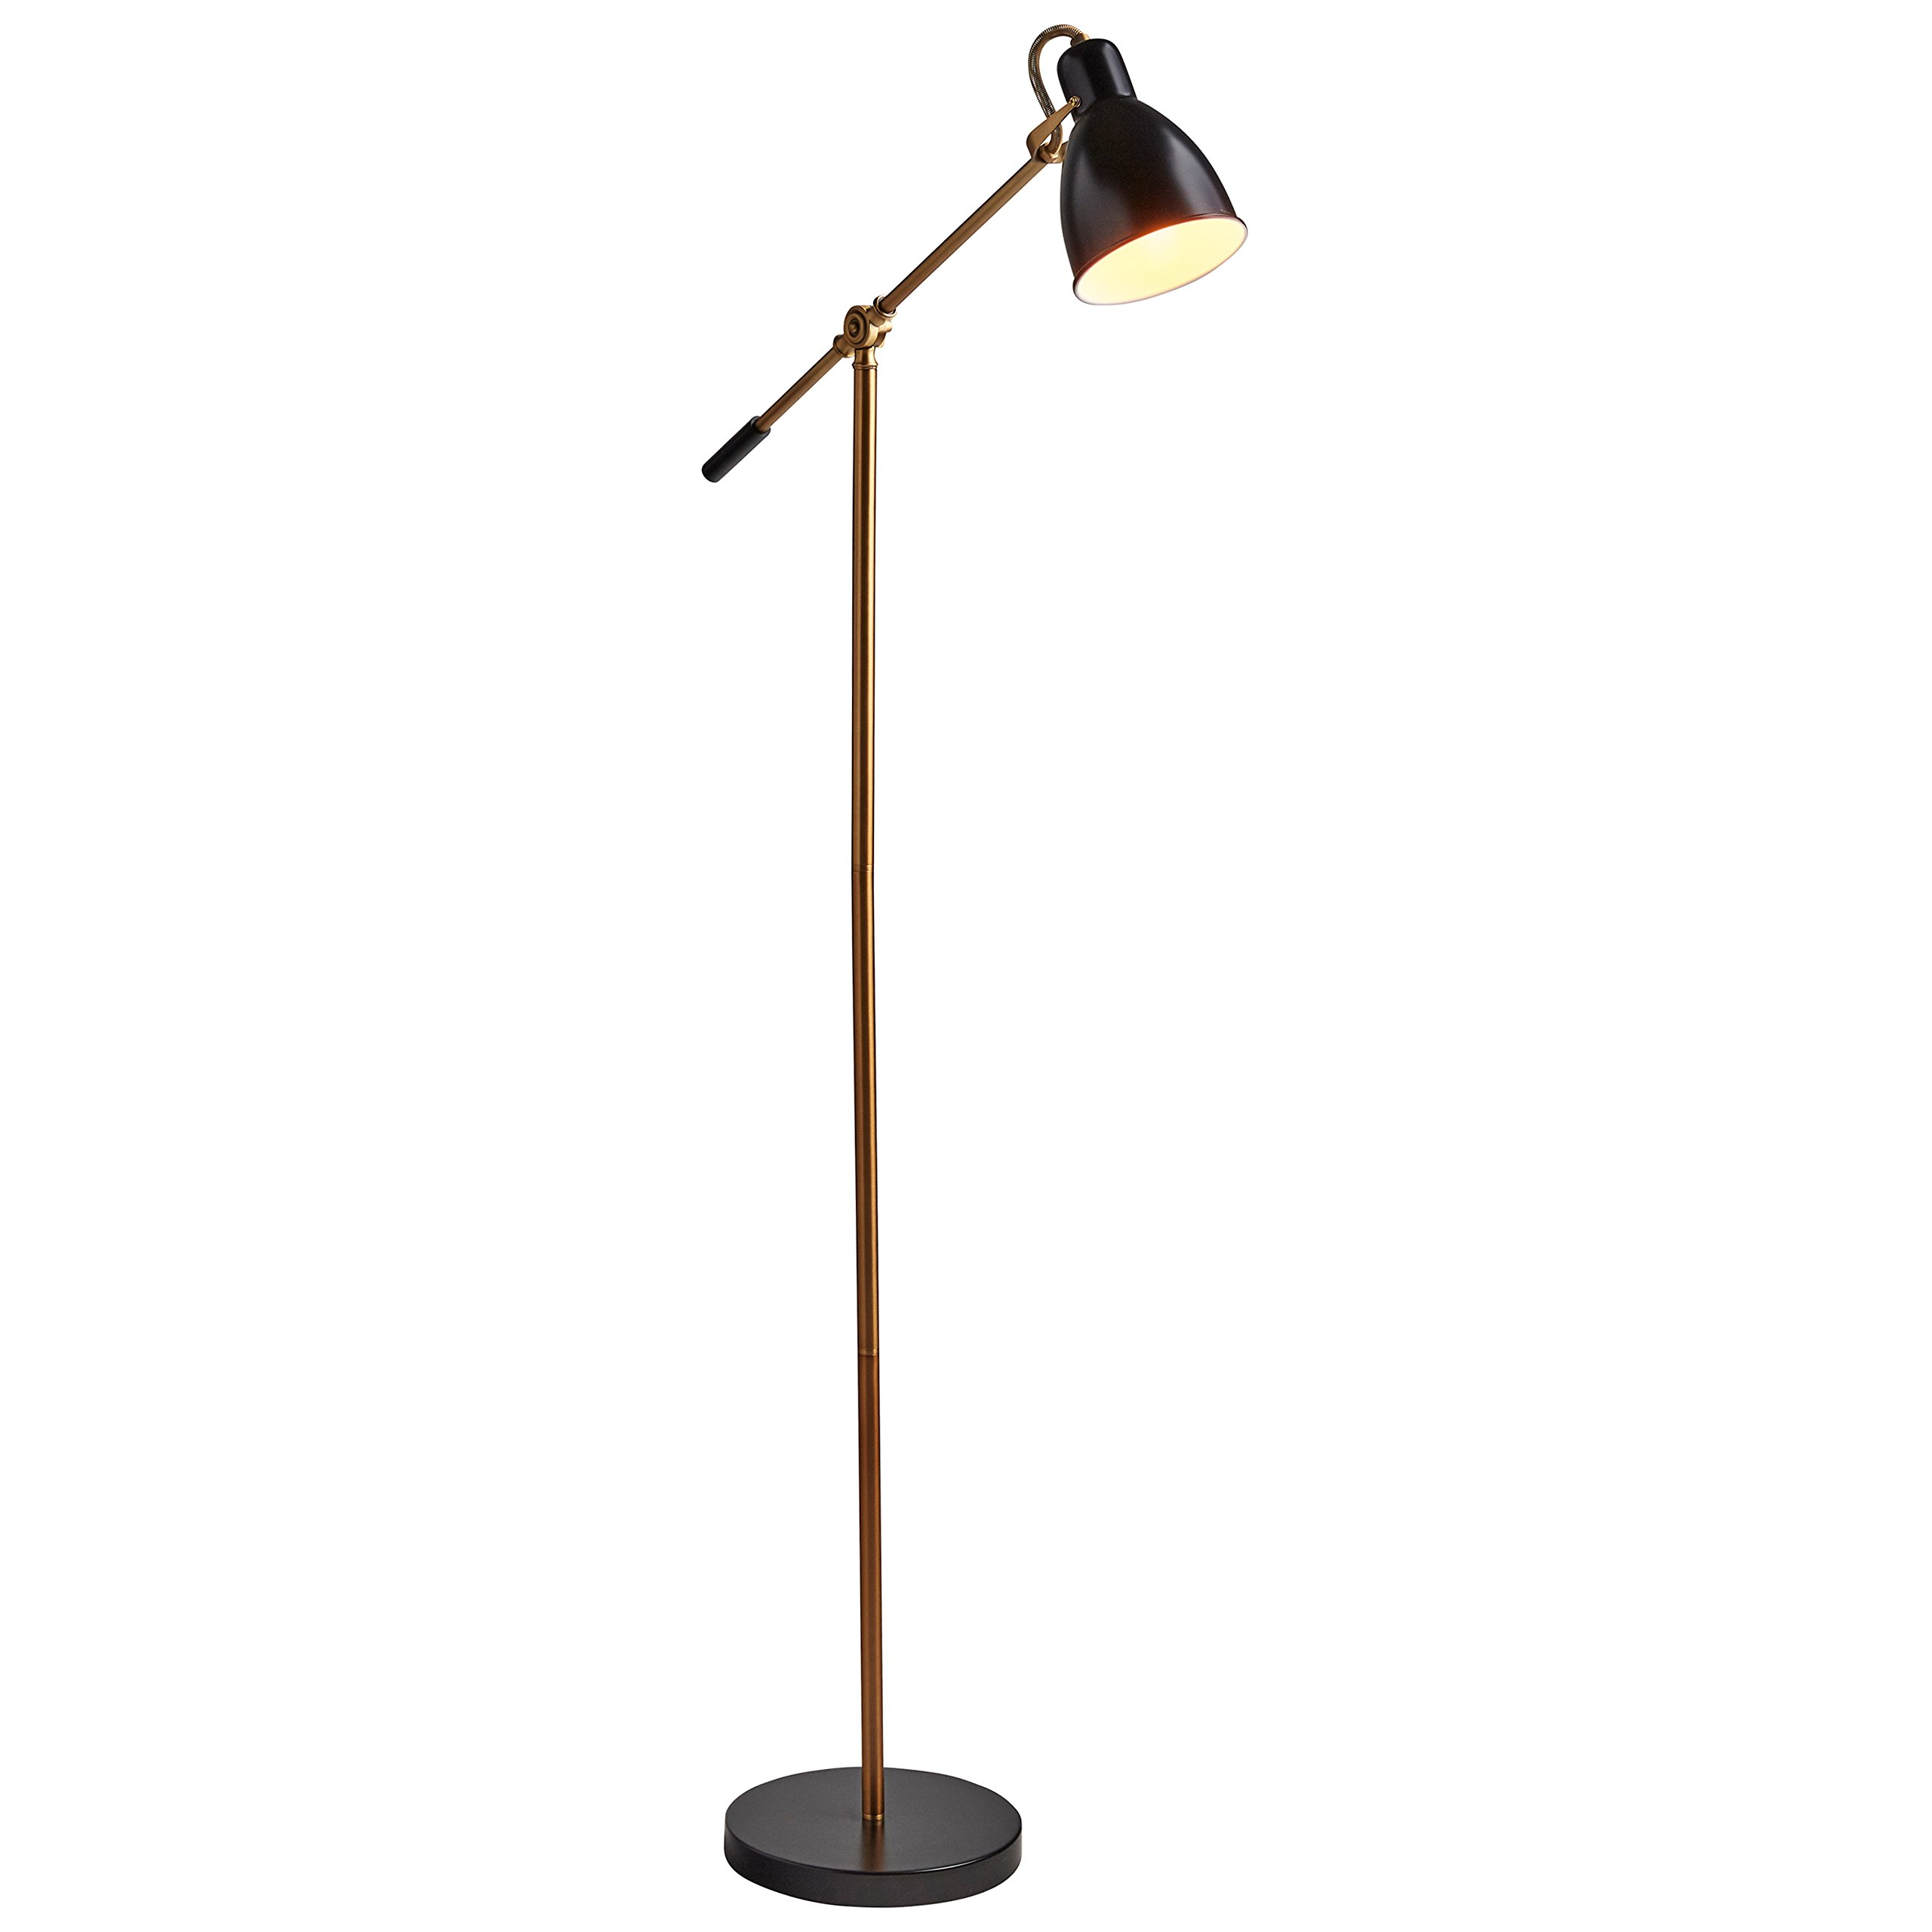 Rivet Caden Adjustable Task Floor Lamp with LED Bulb, 60''H, Black and Brass by Rivet (Image #8)